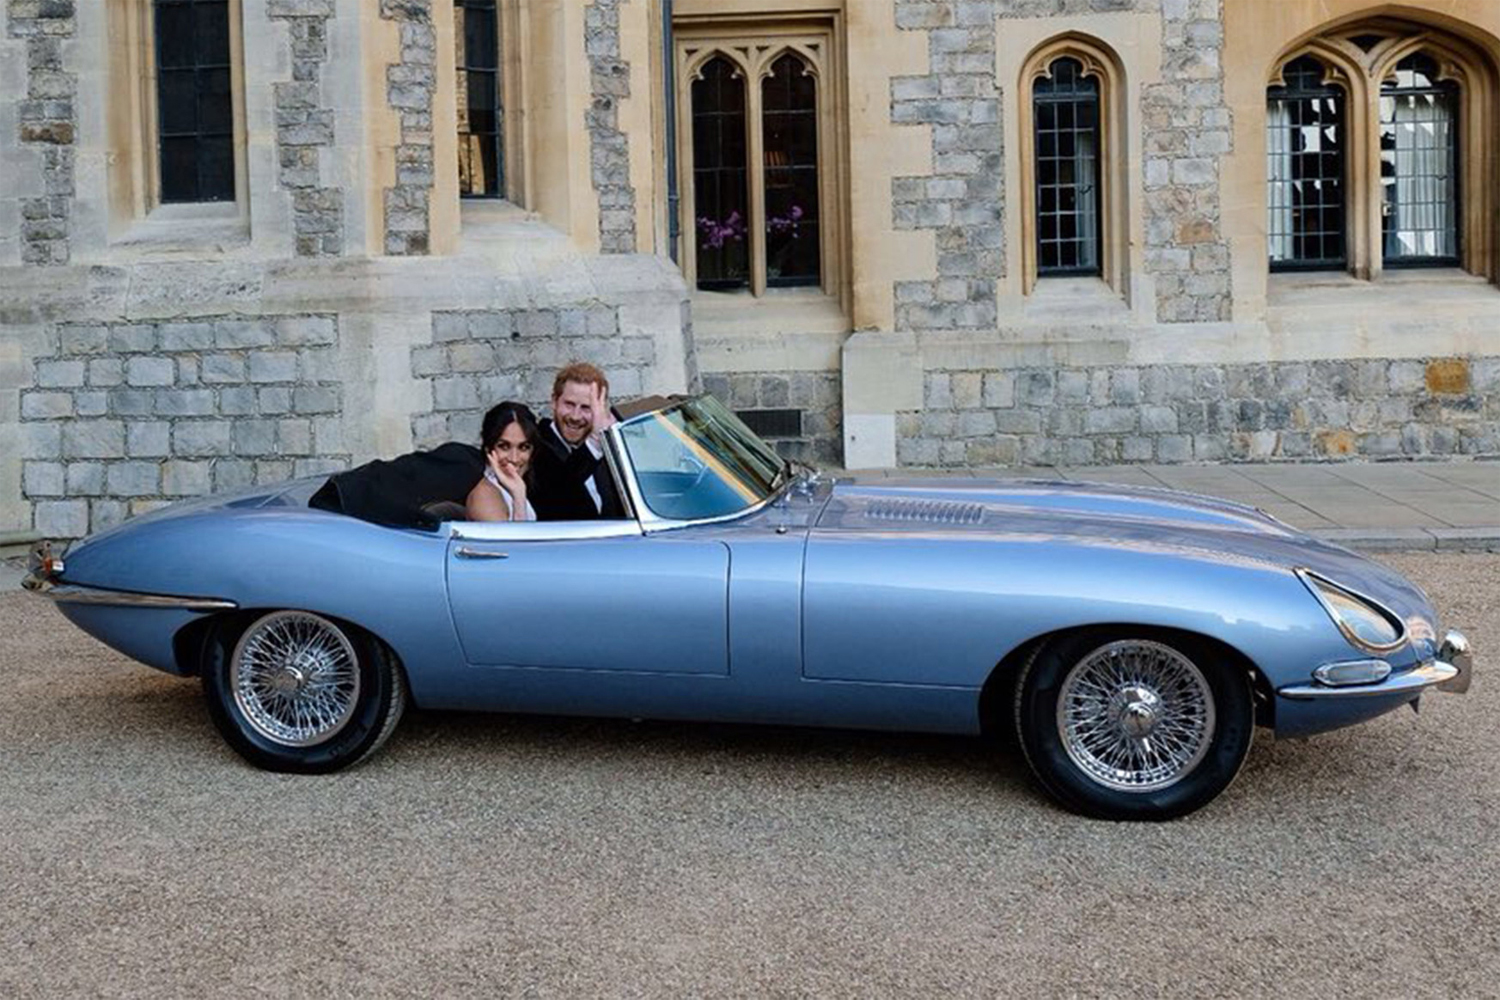 Harry and Meghan Wedding Car